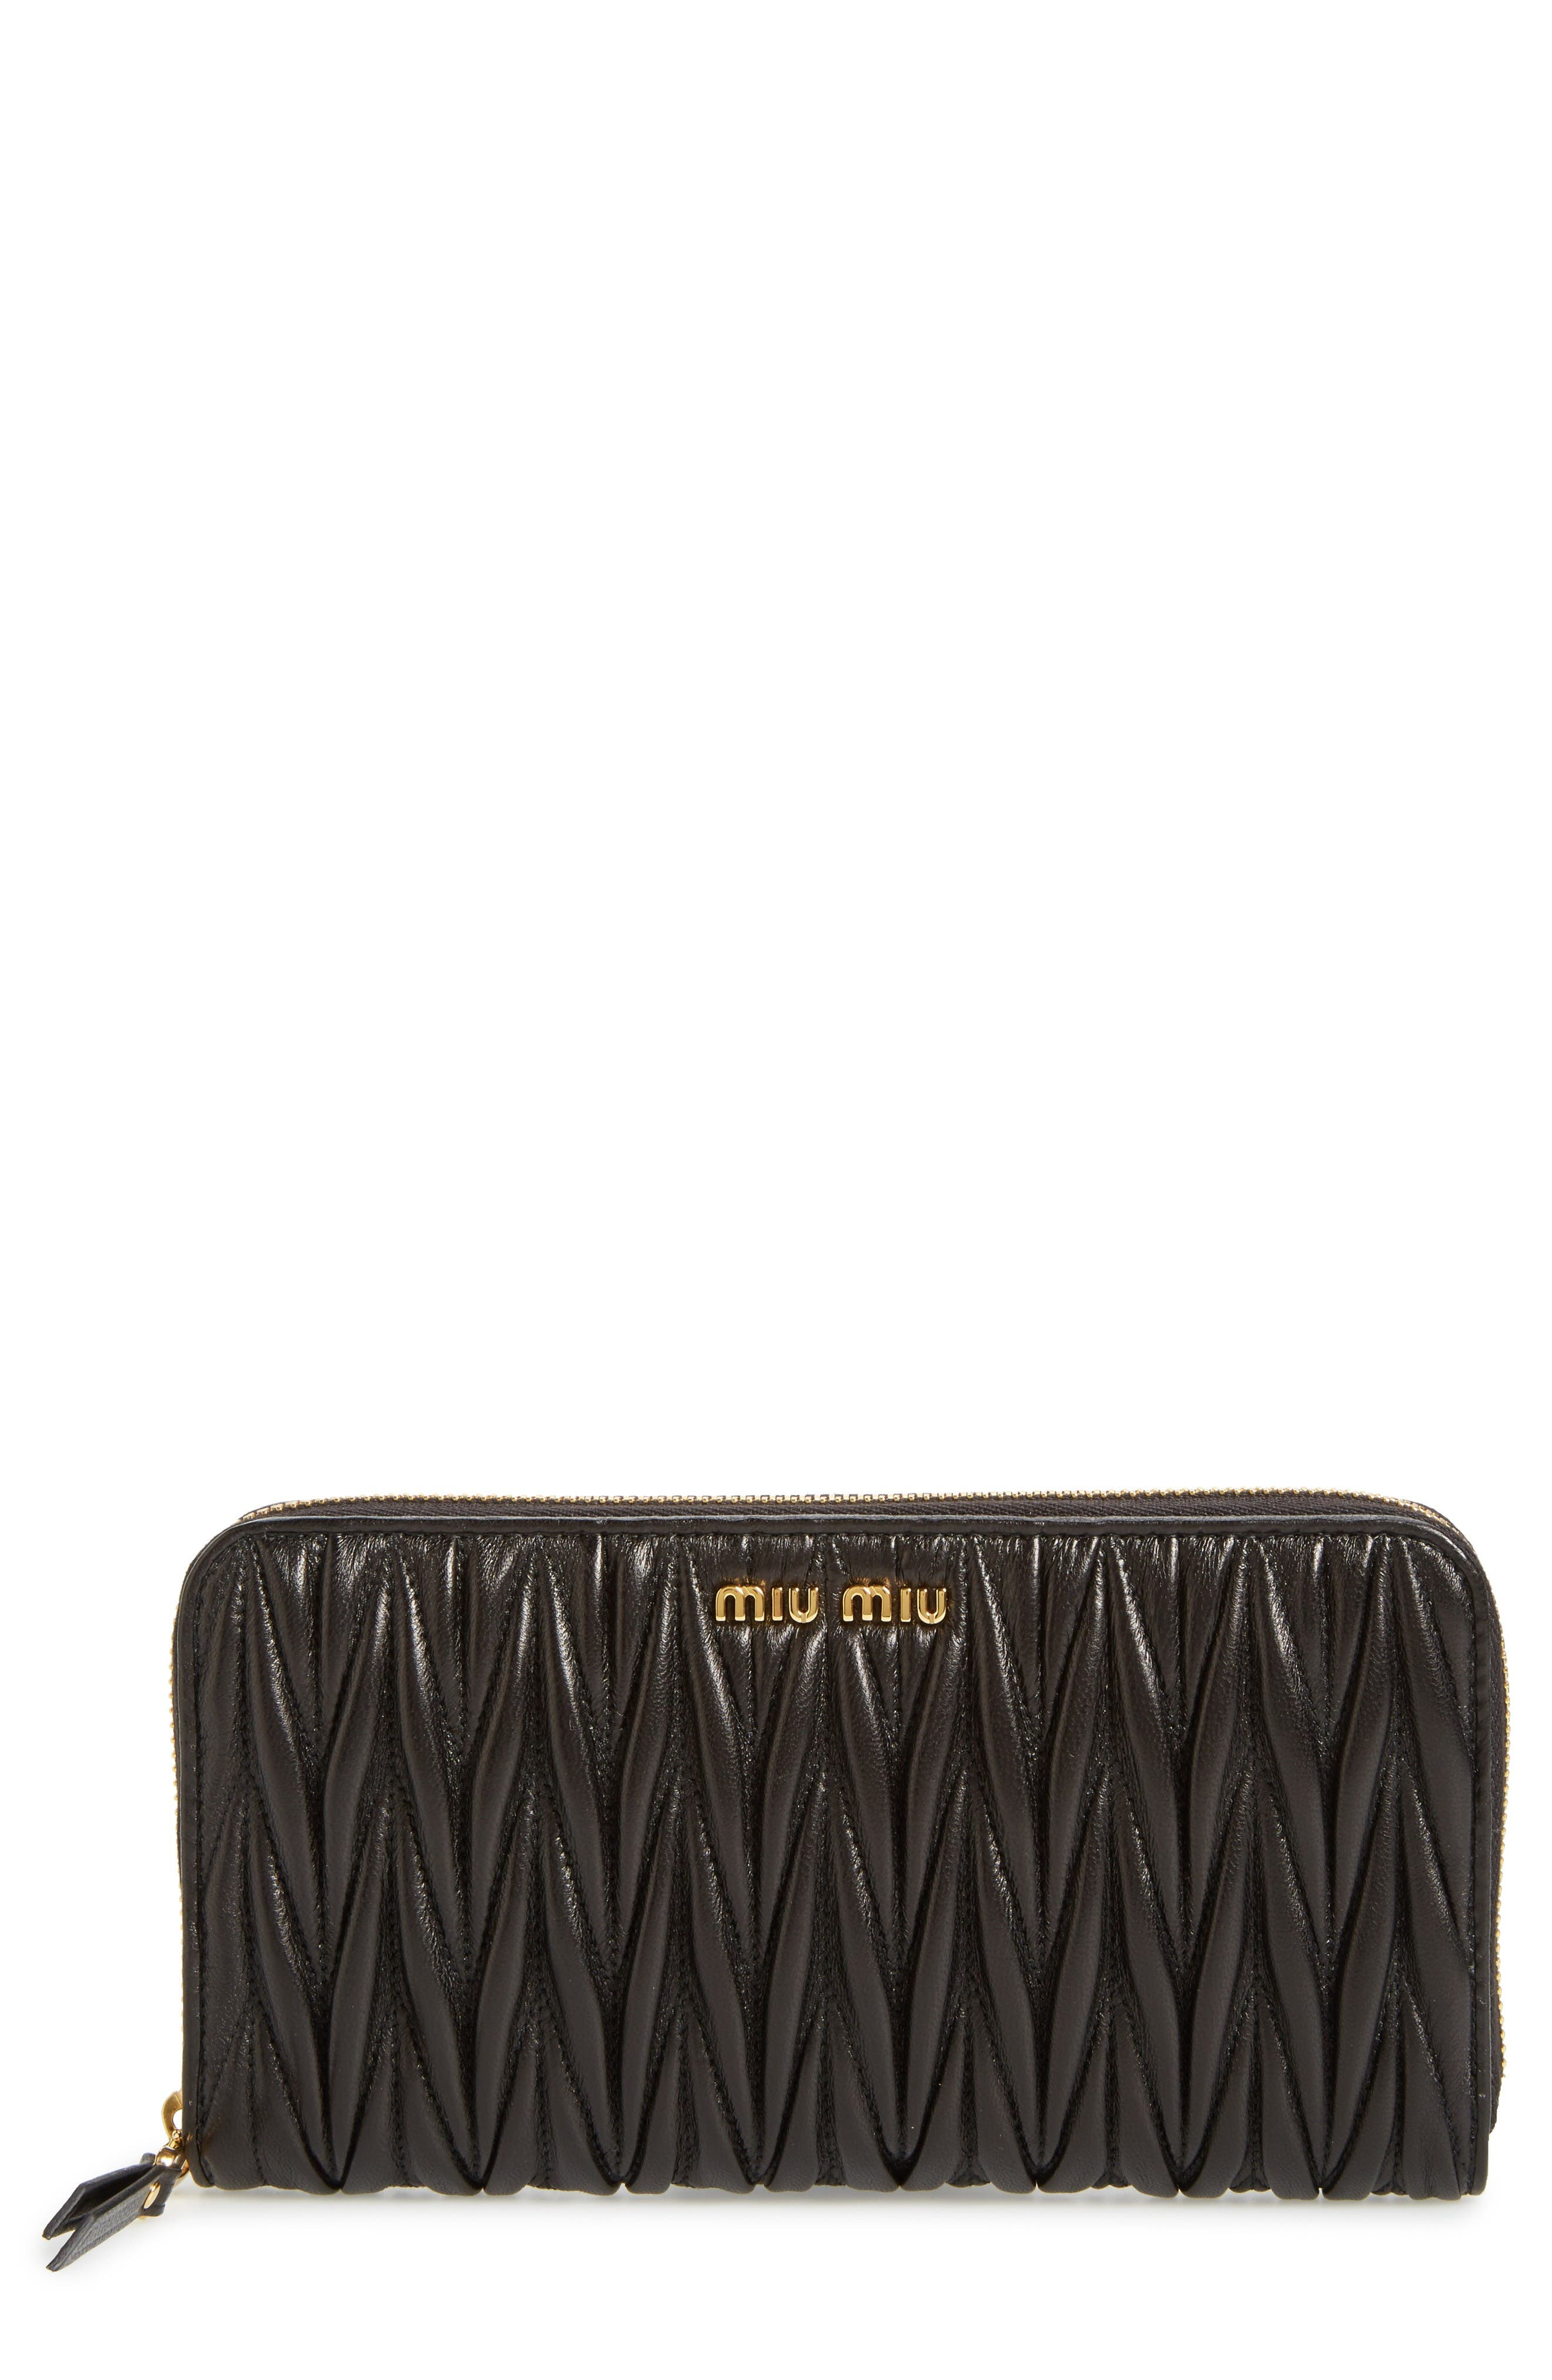 Miu Miu Matelassé Leather Zip Around Wallet